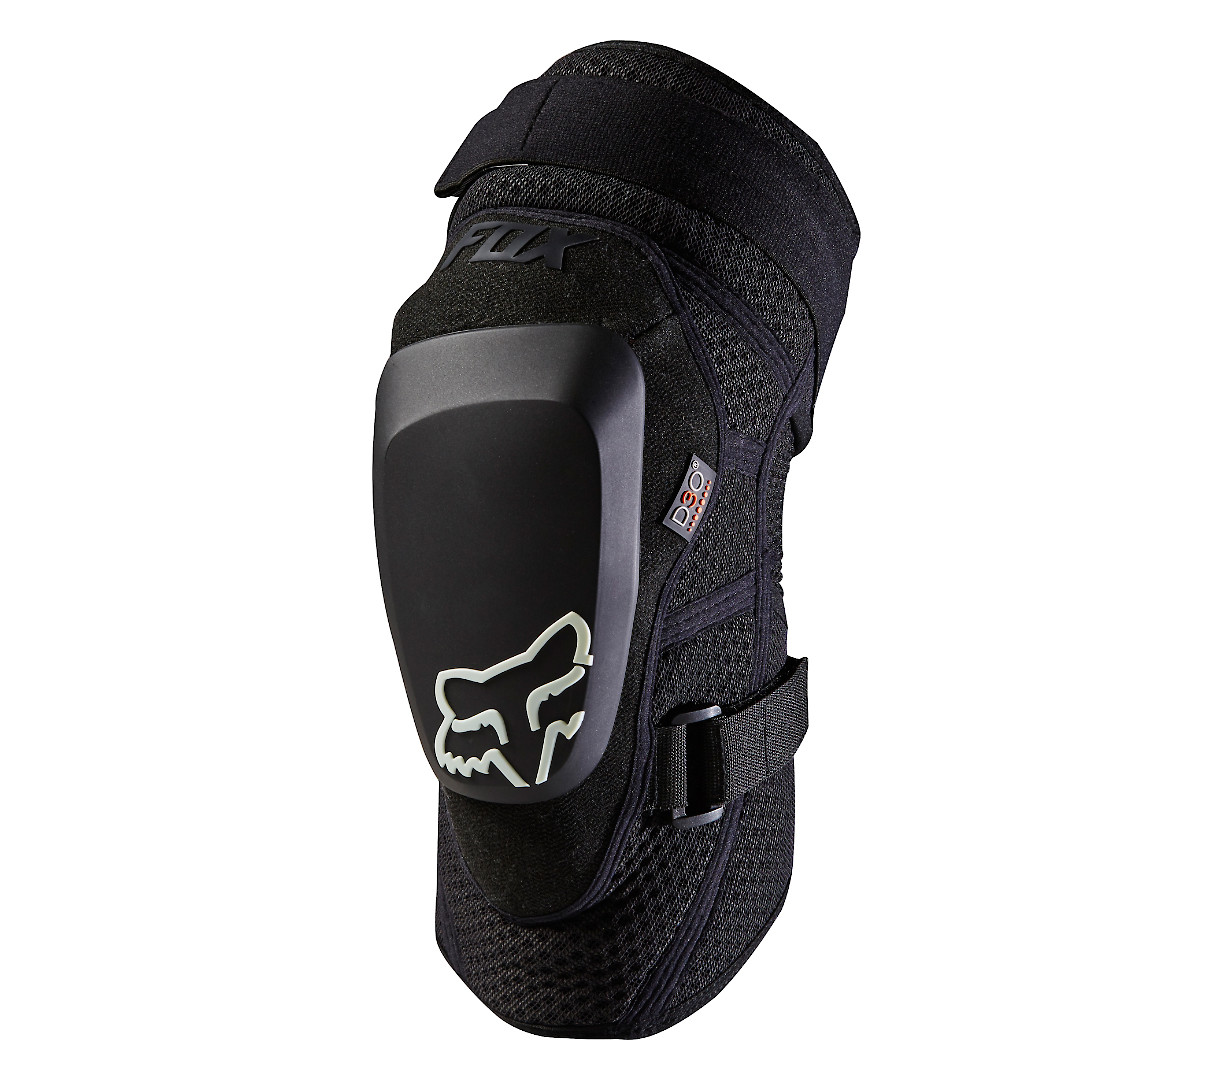 Continental Bike Tires >> Fox Racing Launch Pro D3O Knee Guards - Reviews ...